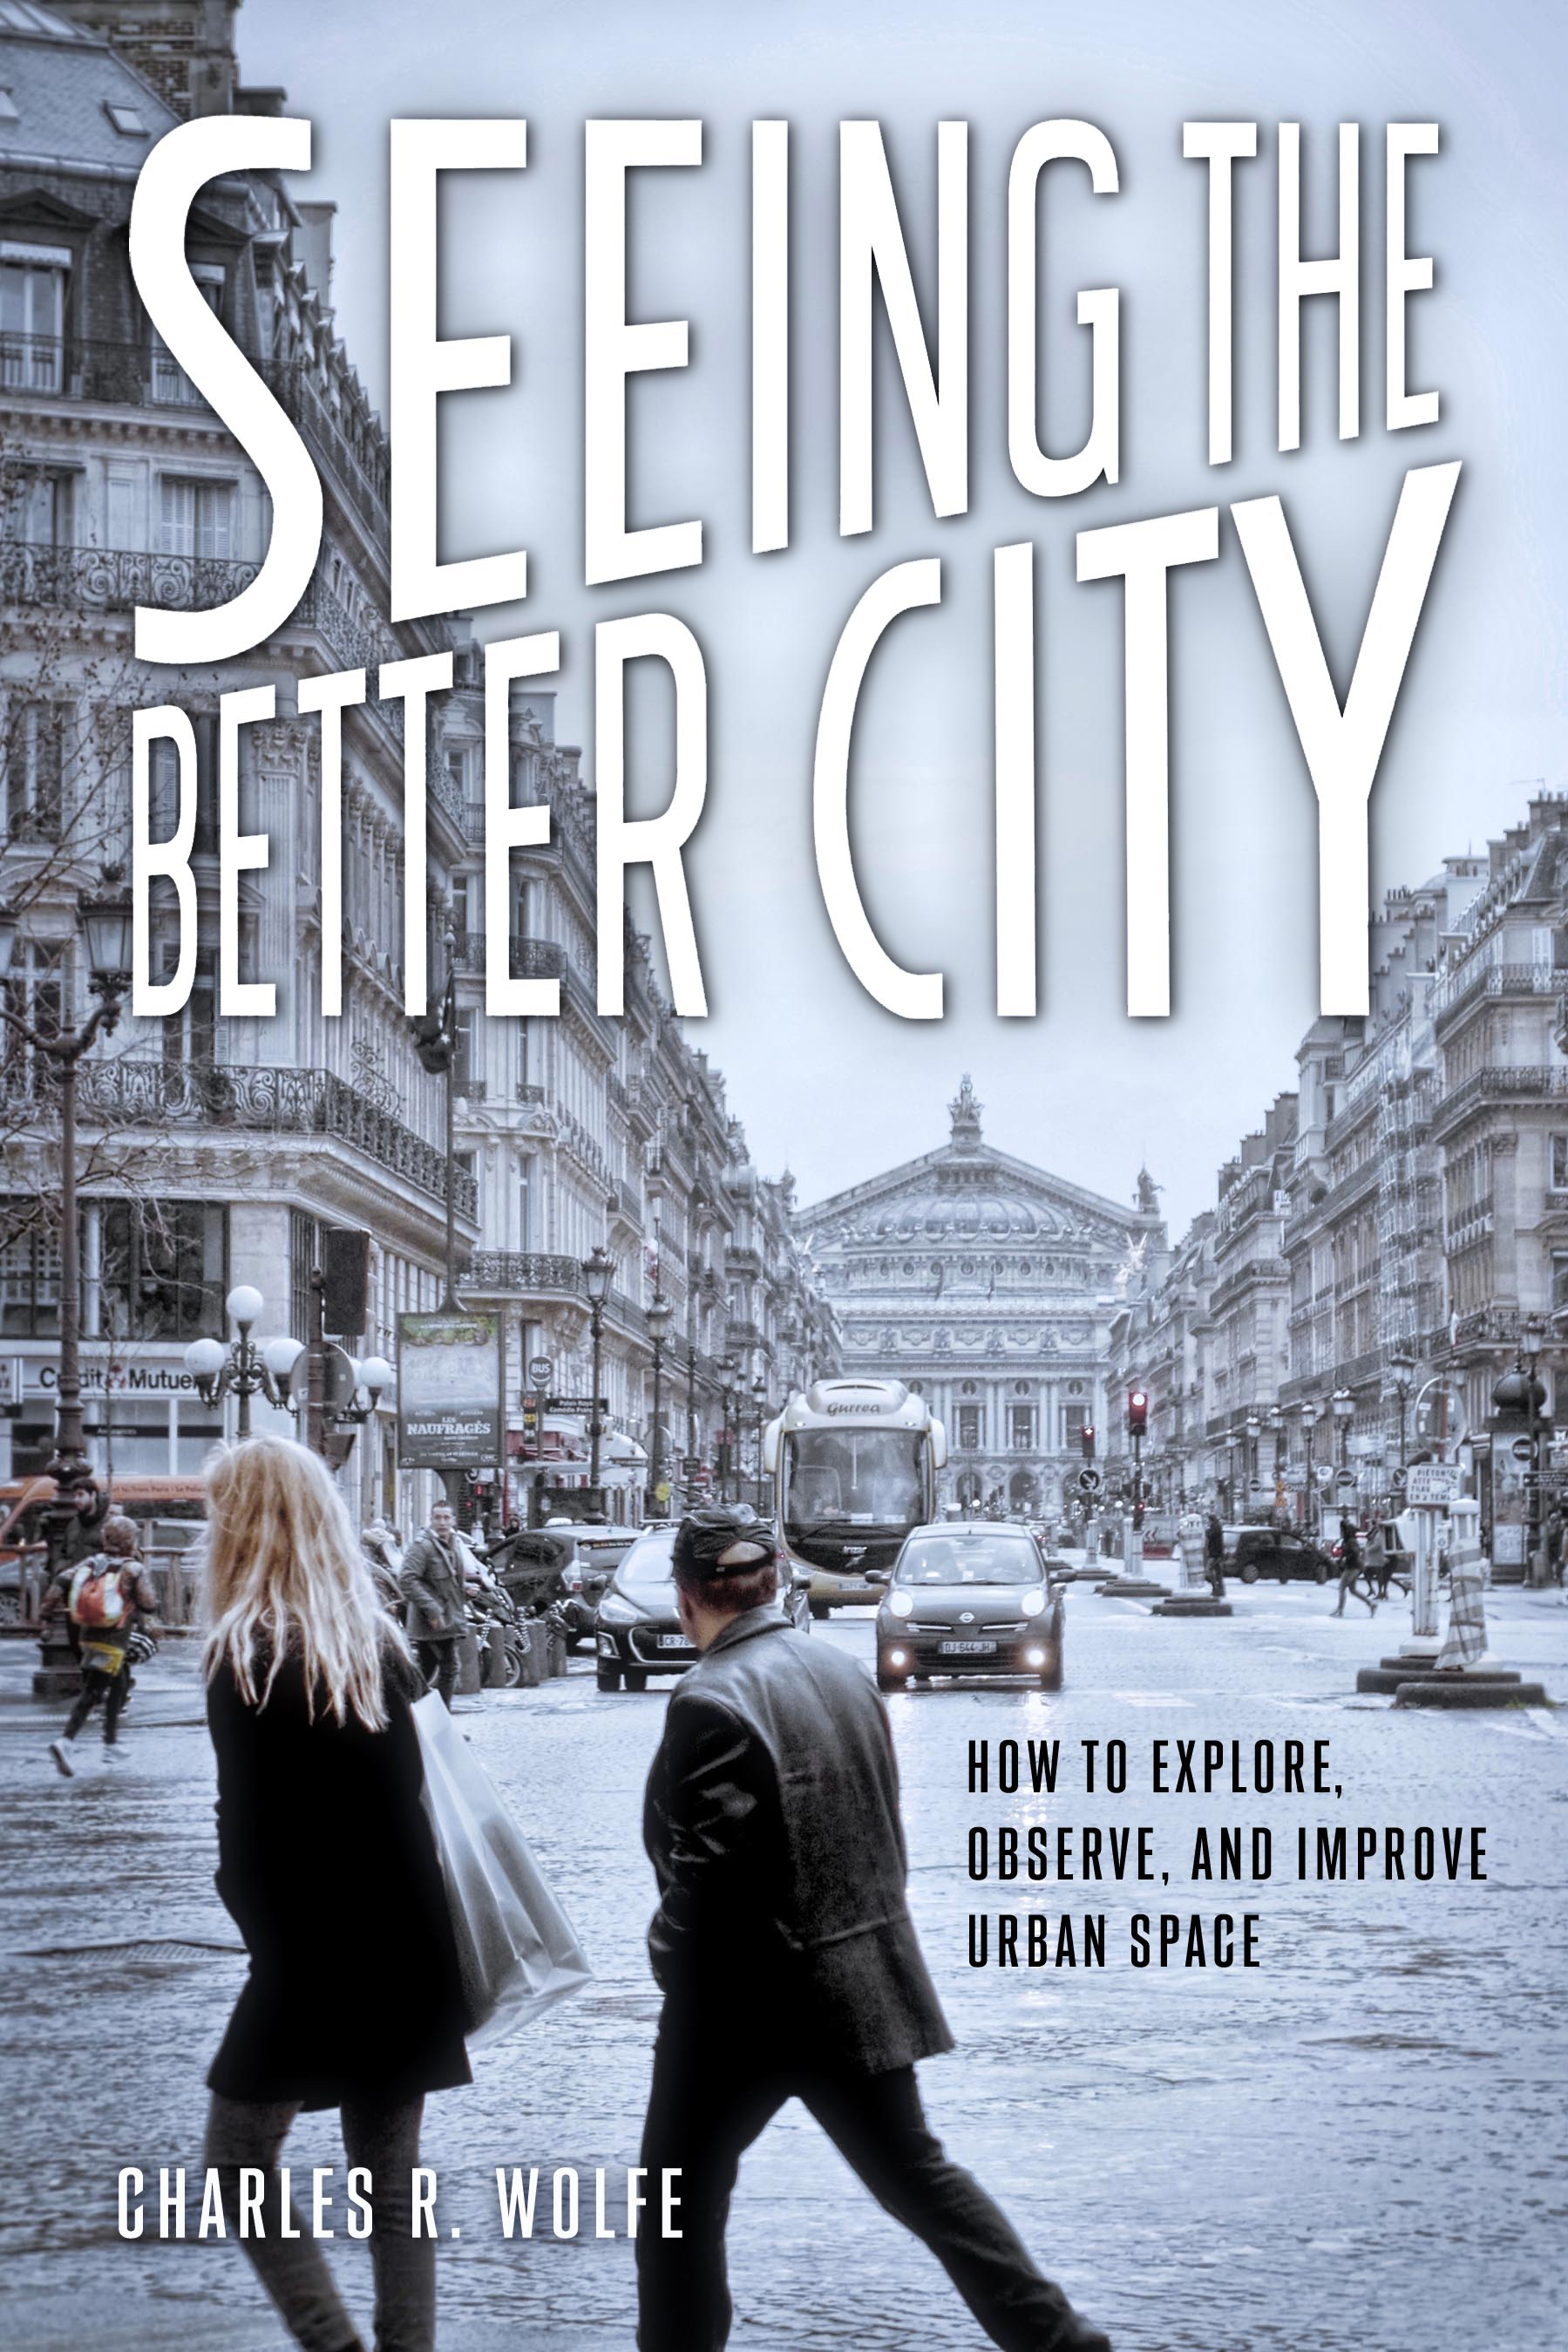 Charles R. Wolfe on Seeing the Better City